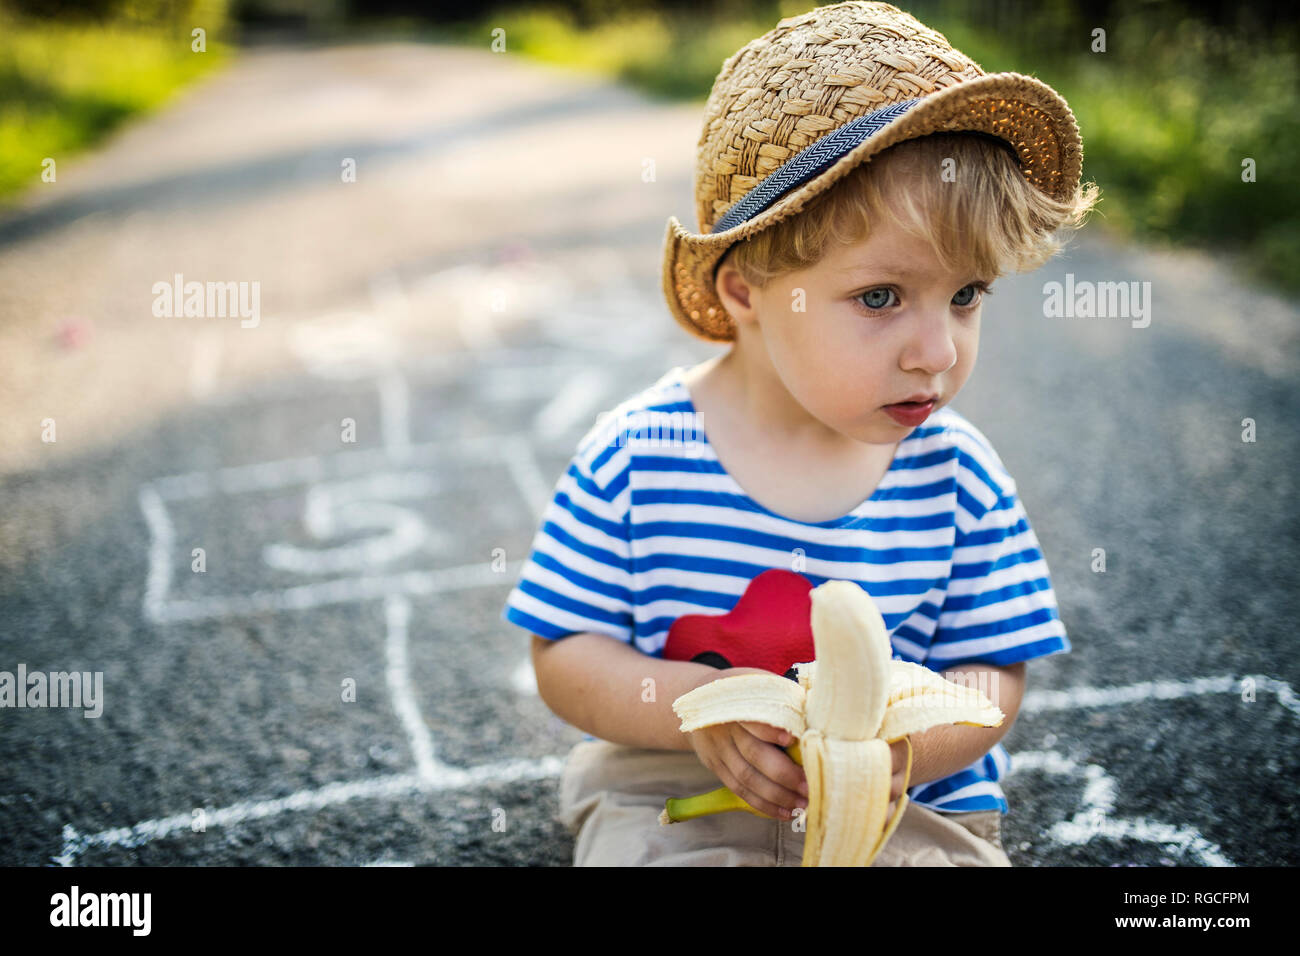 Portrait of toddler boy with banana sitting on the street watching something Stock Photo